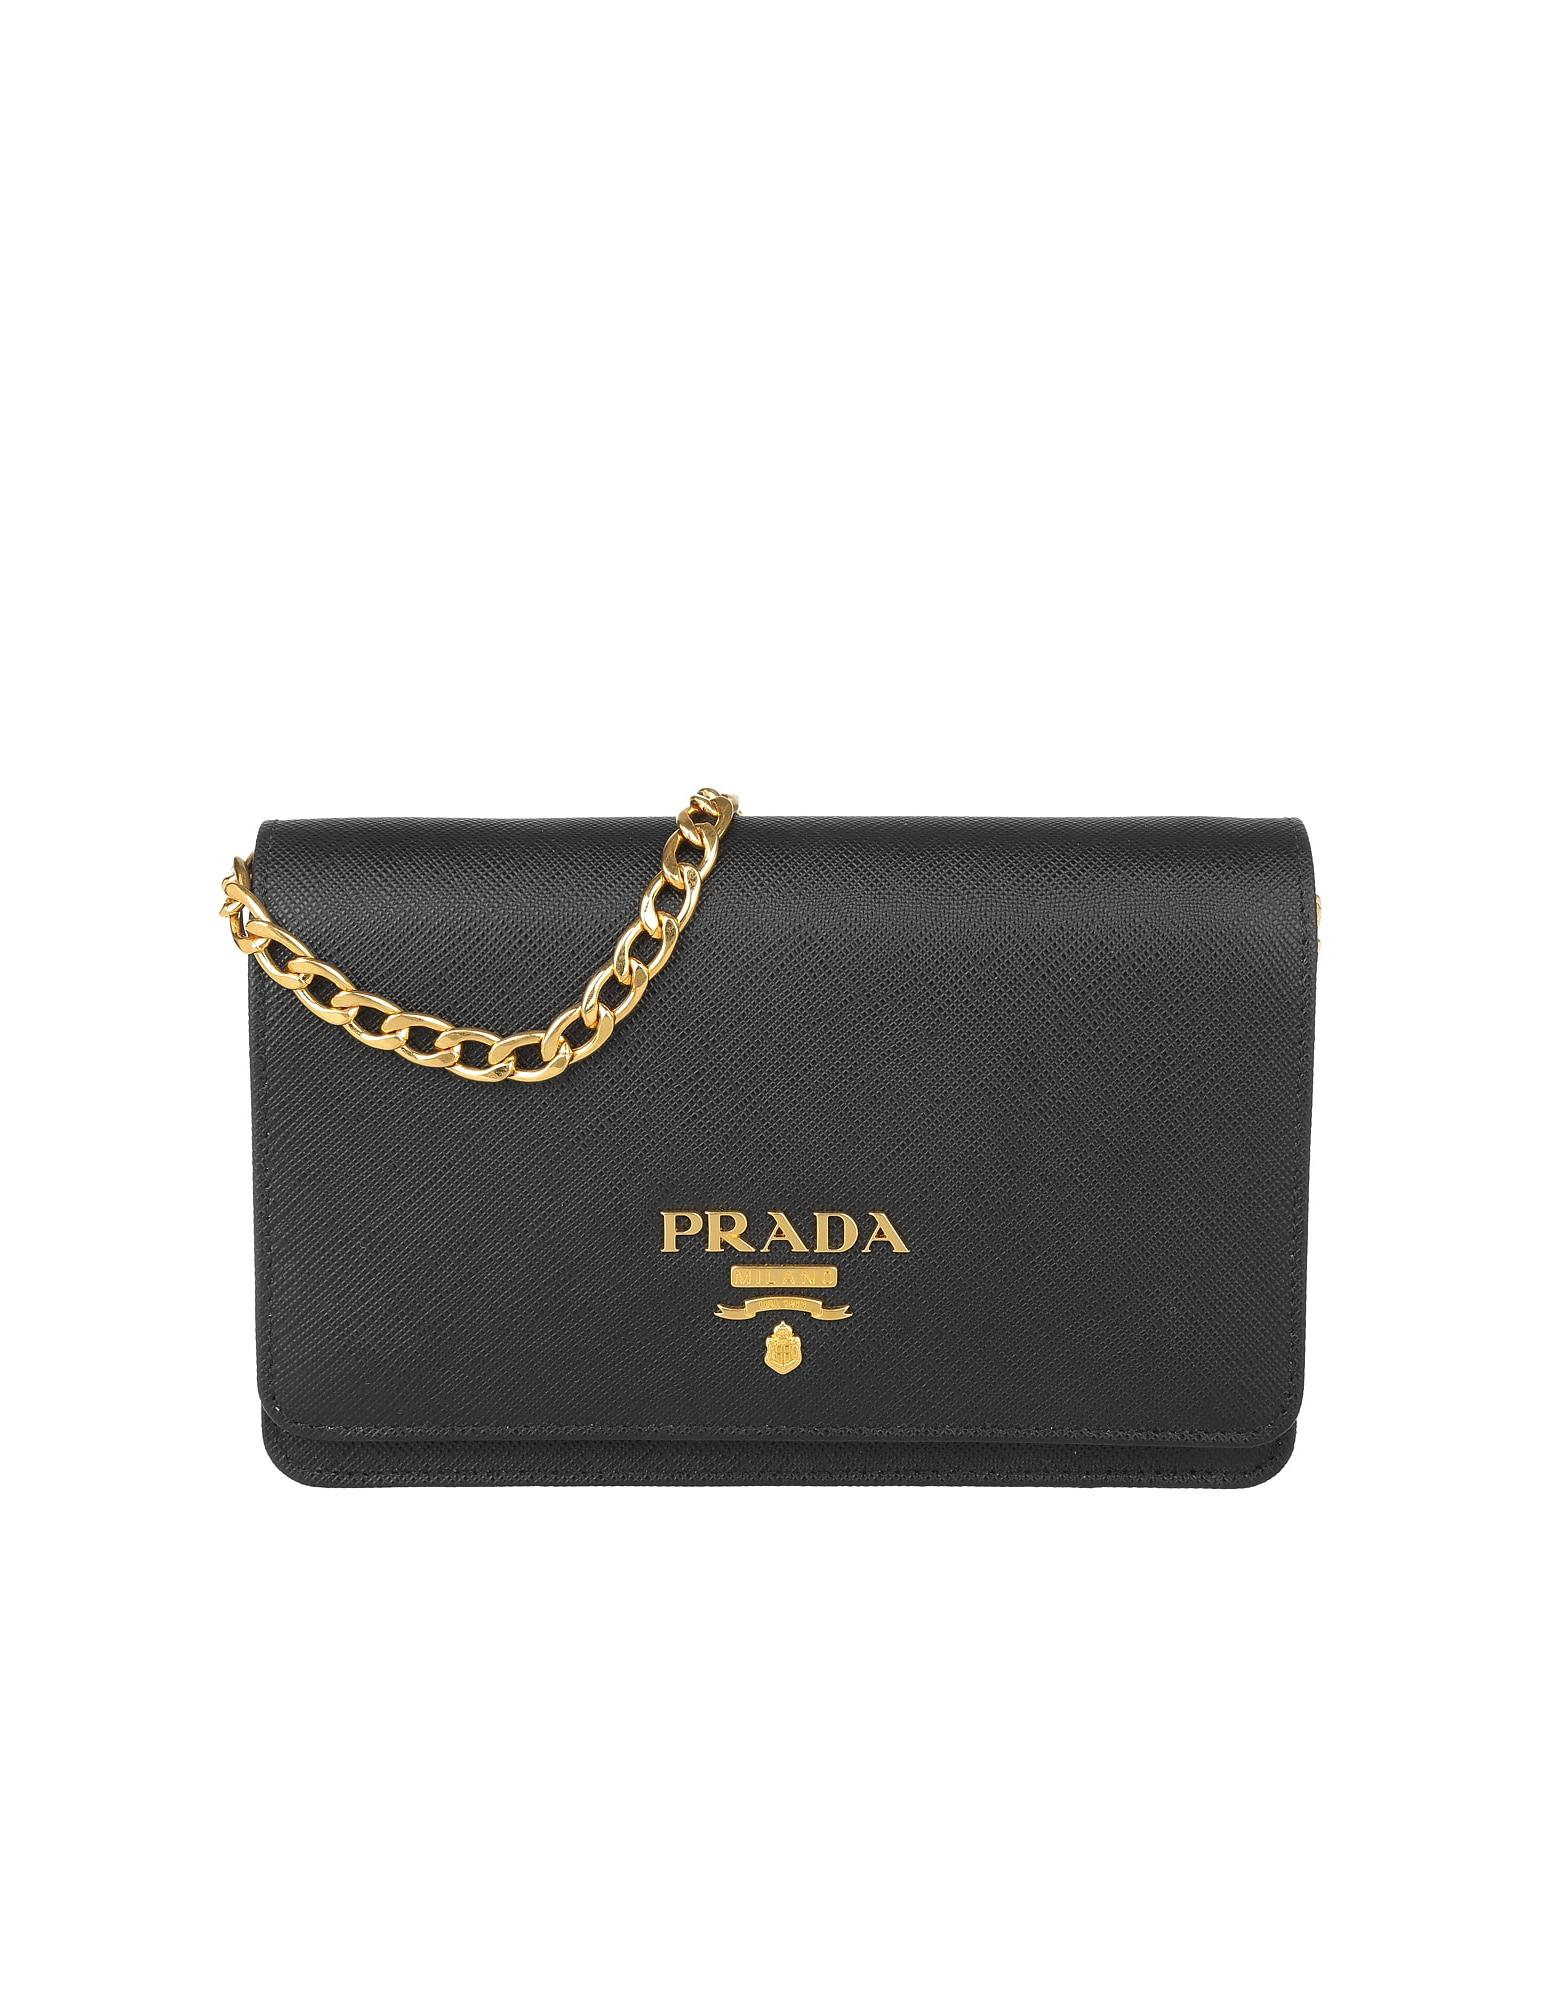 8204ab81fb5d Prada - Black Shoulder Bag Saffiano Lux Nero - Lyst. View fullscreen